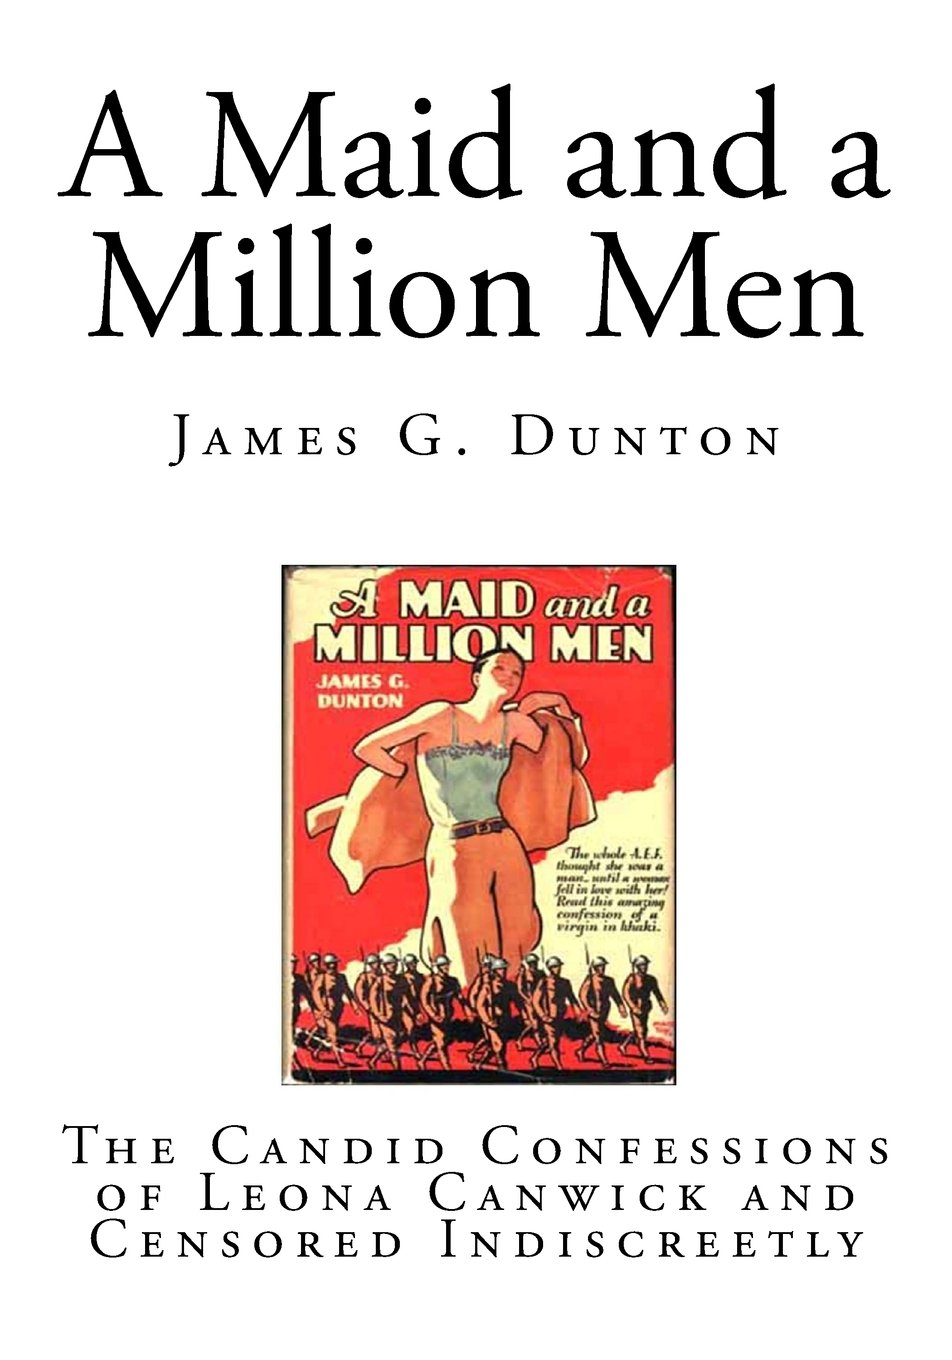 Read Online A Maid and a Million Men: The Candid Confessions of Leona Canwick and Censored Indiscreetly PDF